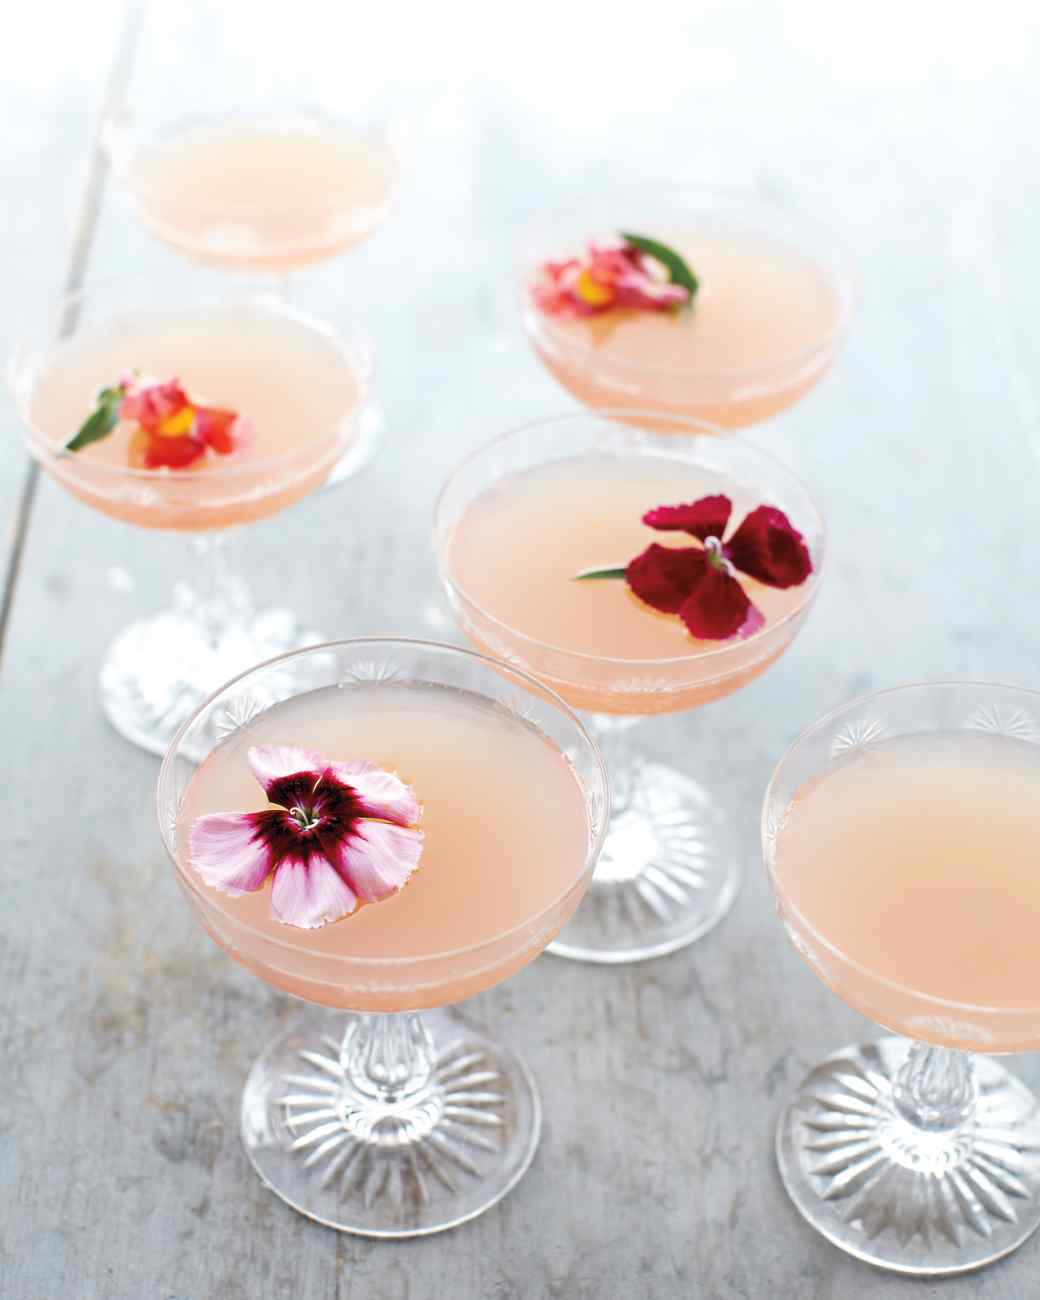 8 Refreshing Spring Cocktails - Lillet Rose Spring Cocktail | Martha Stewart